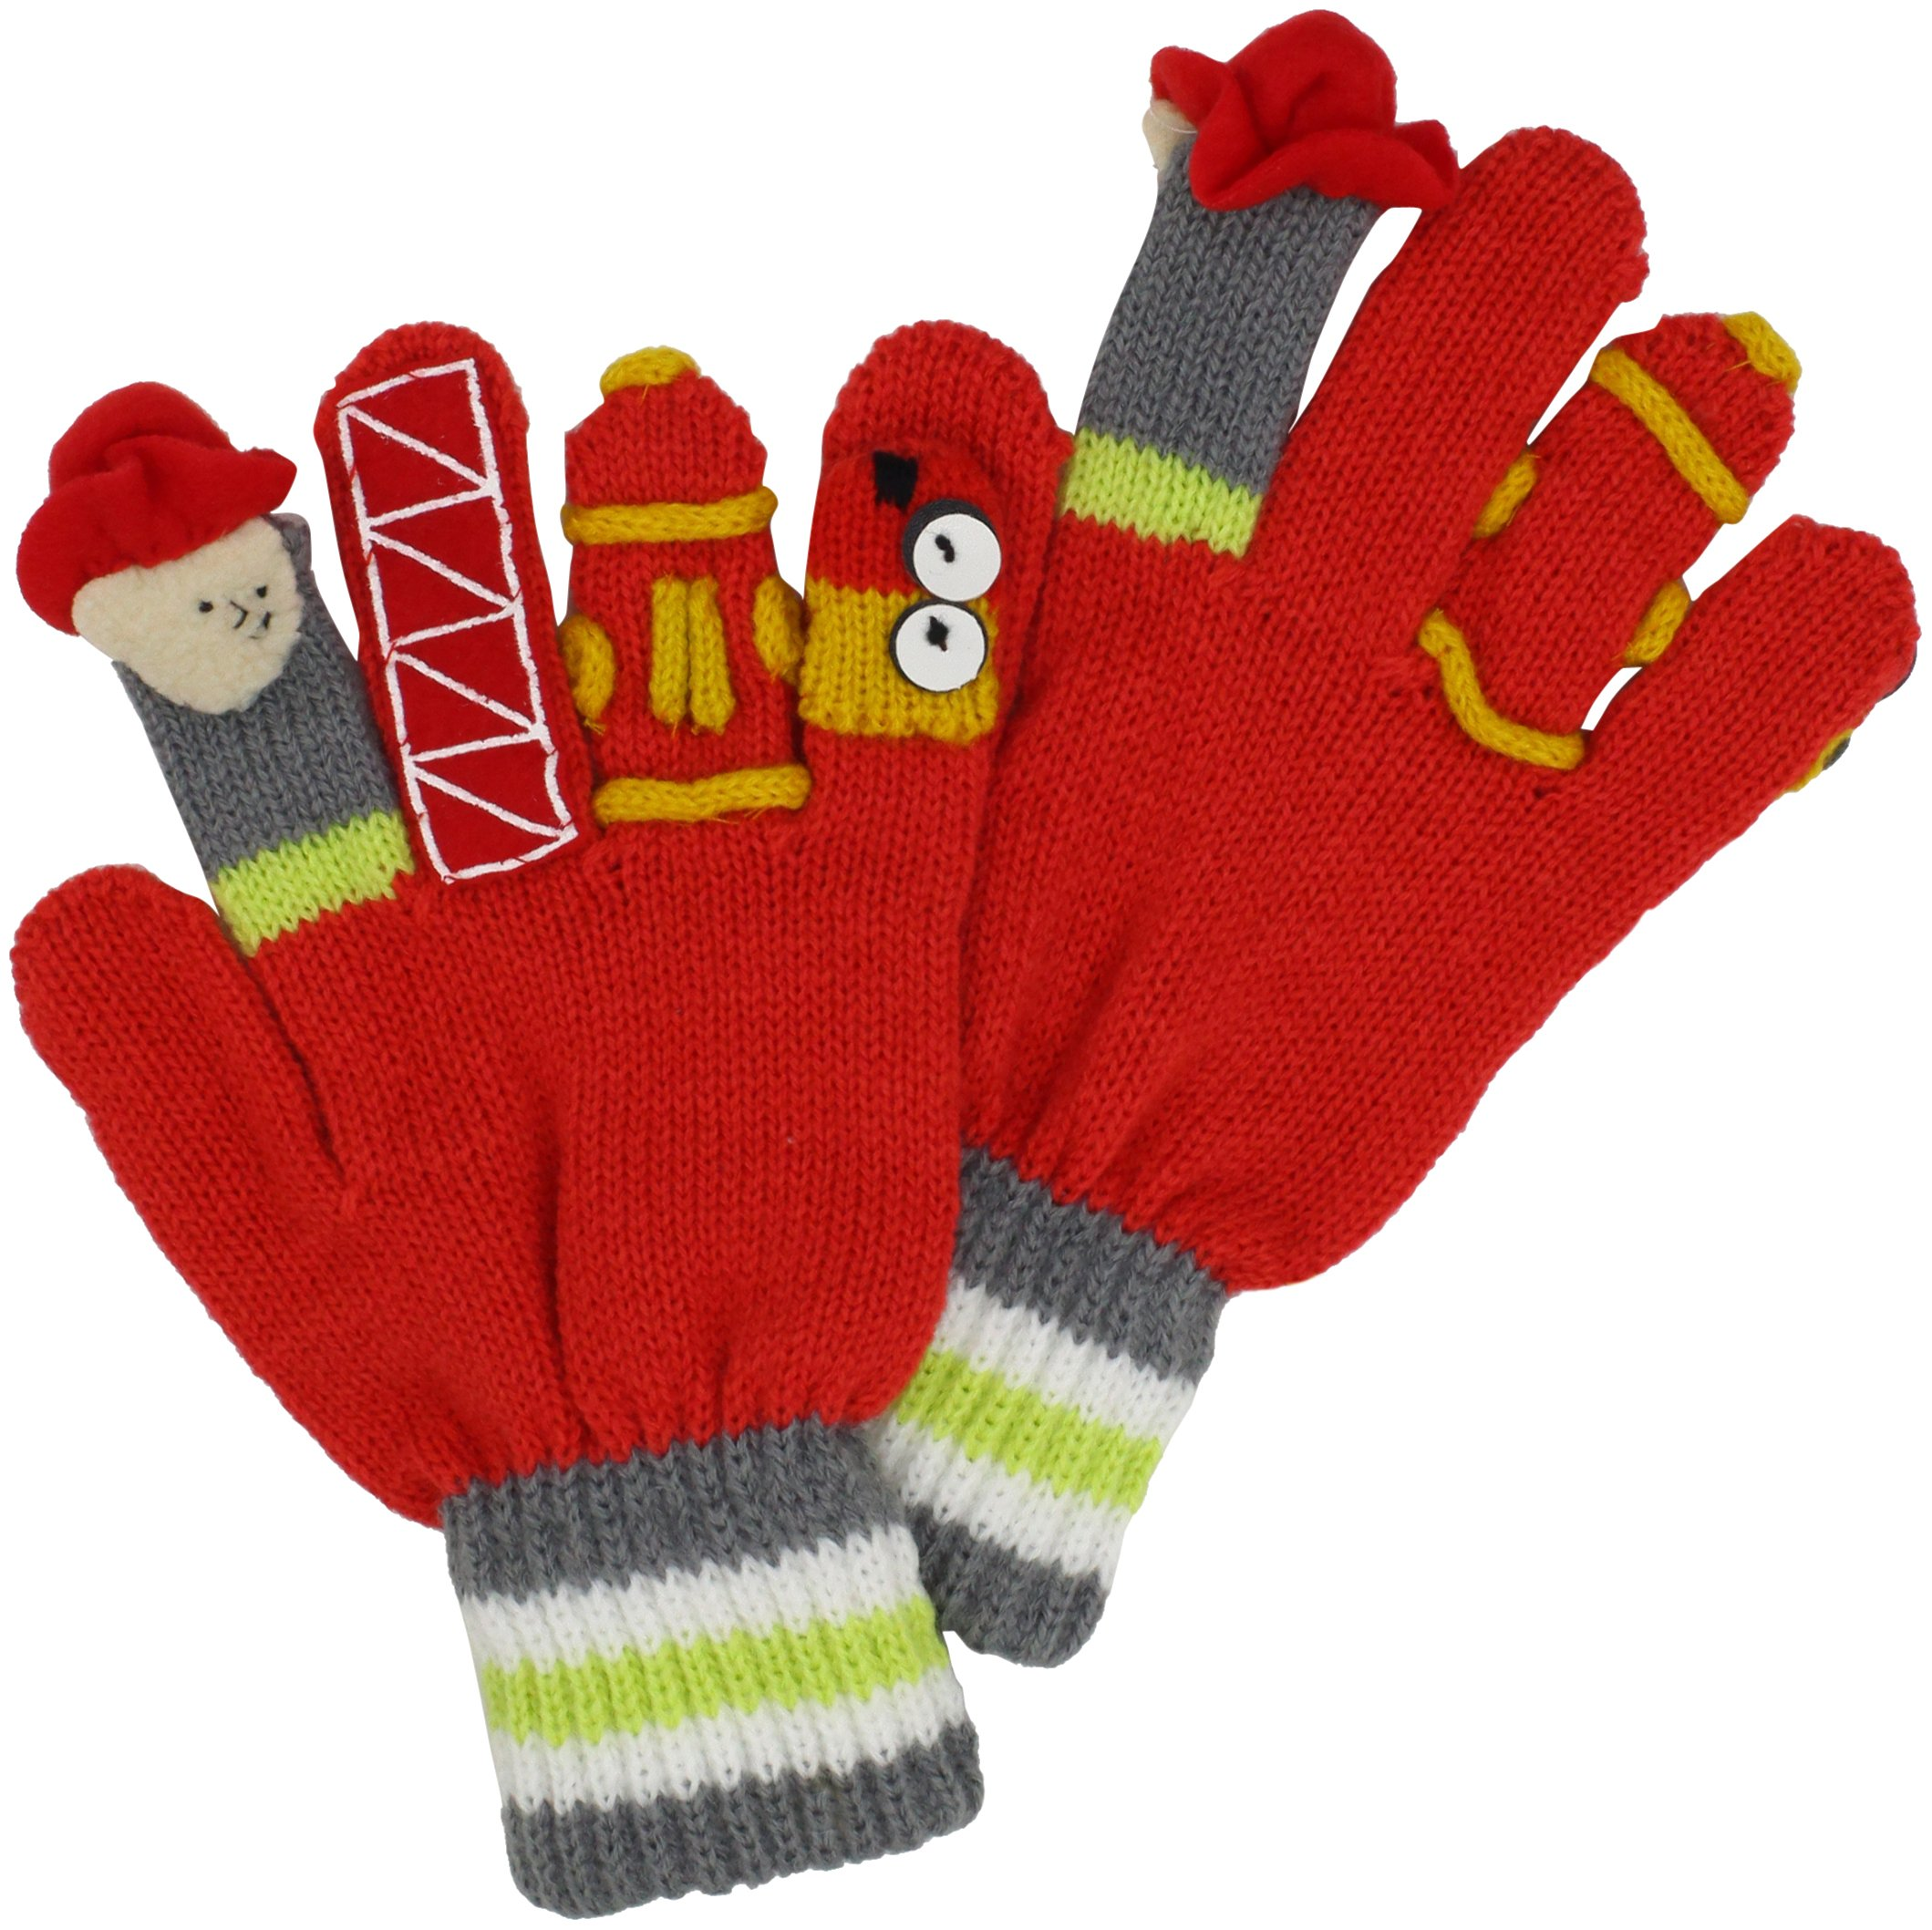 Kidorable Fireman Knit Kids Gloves, Big Kids Medium, Ages 6-8, Soft Red Acrylic Knit Winter Gloves, With Fire Fighter Finger Puppets